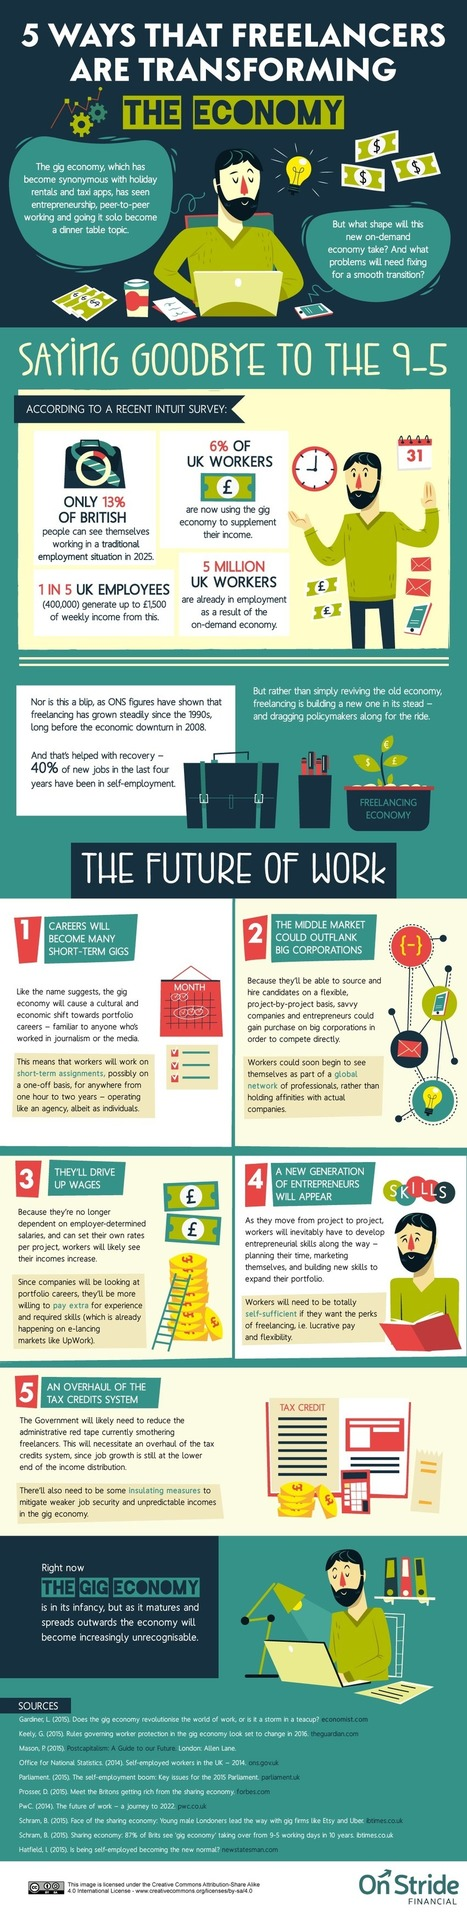 5 Ways Freelancers are Transforming the Economy [Infographic] | Career Development, Personal Branding & Job Hunting | Scoop.it